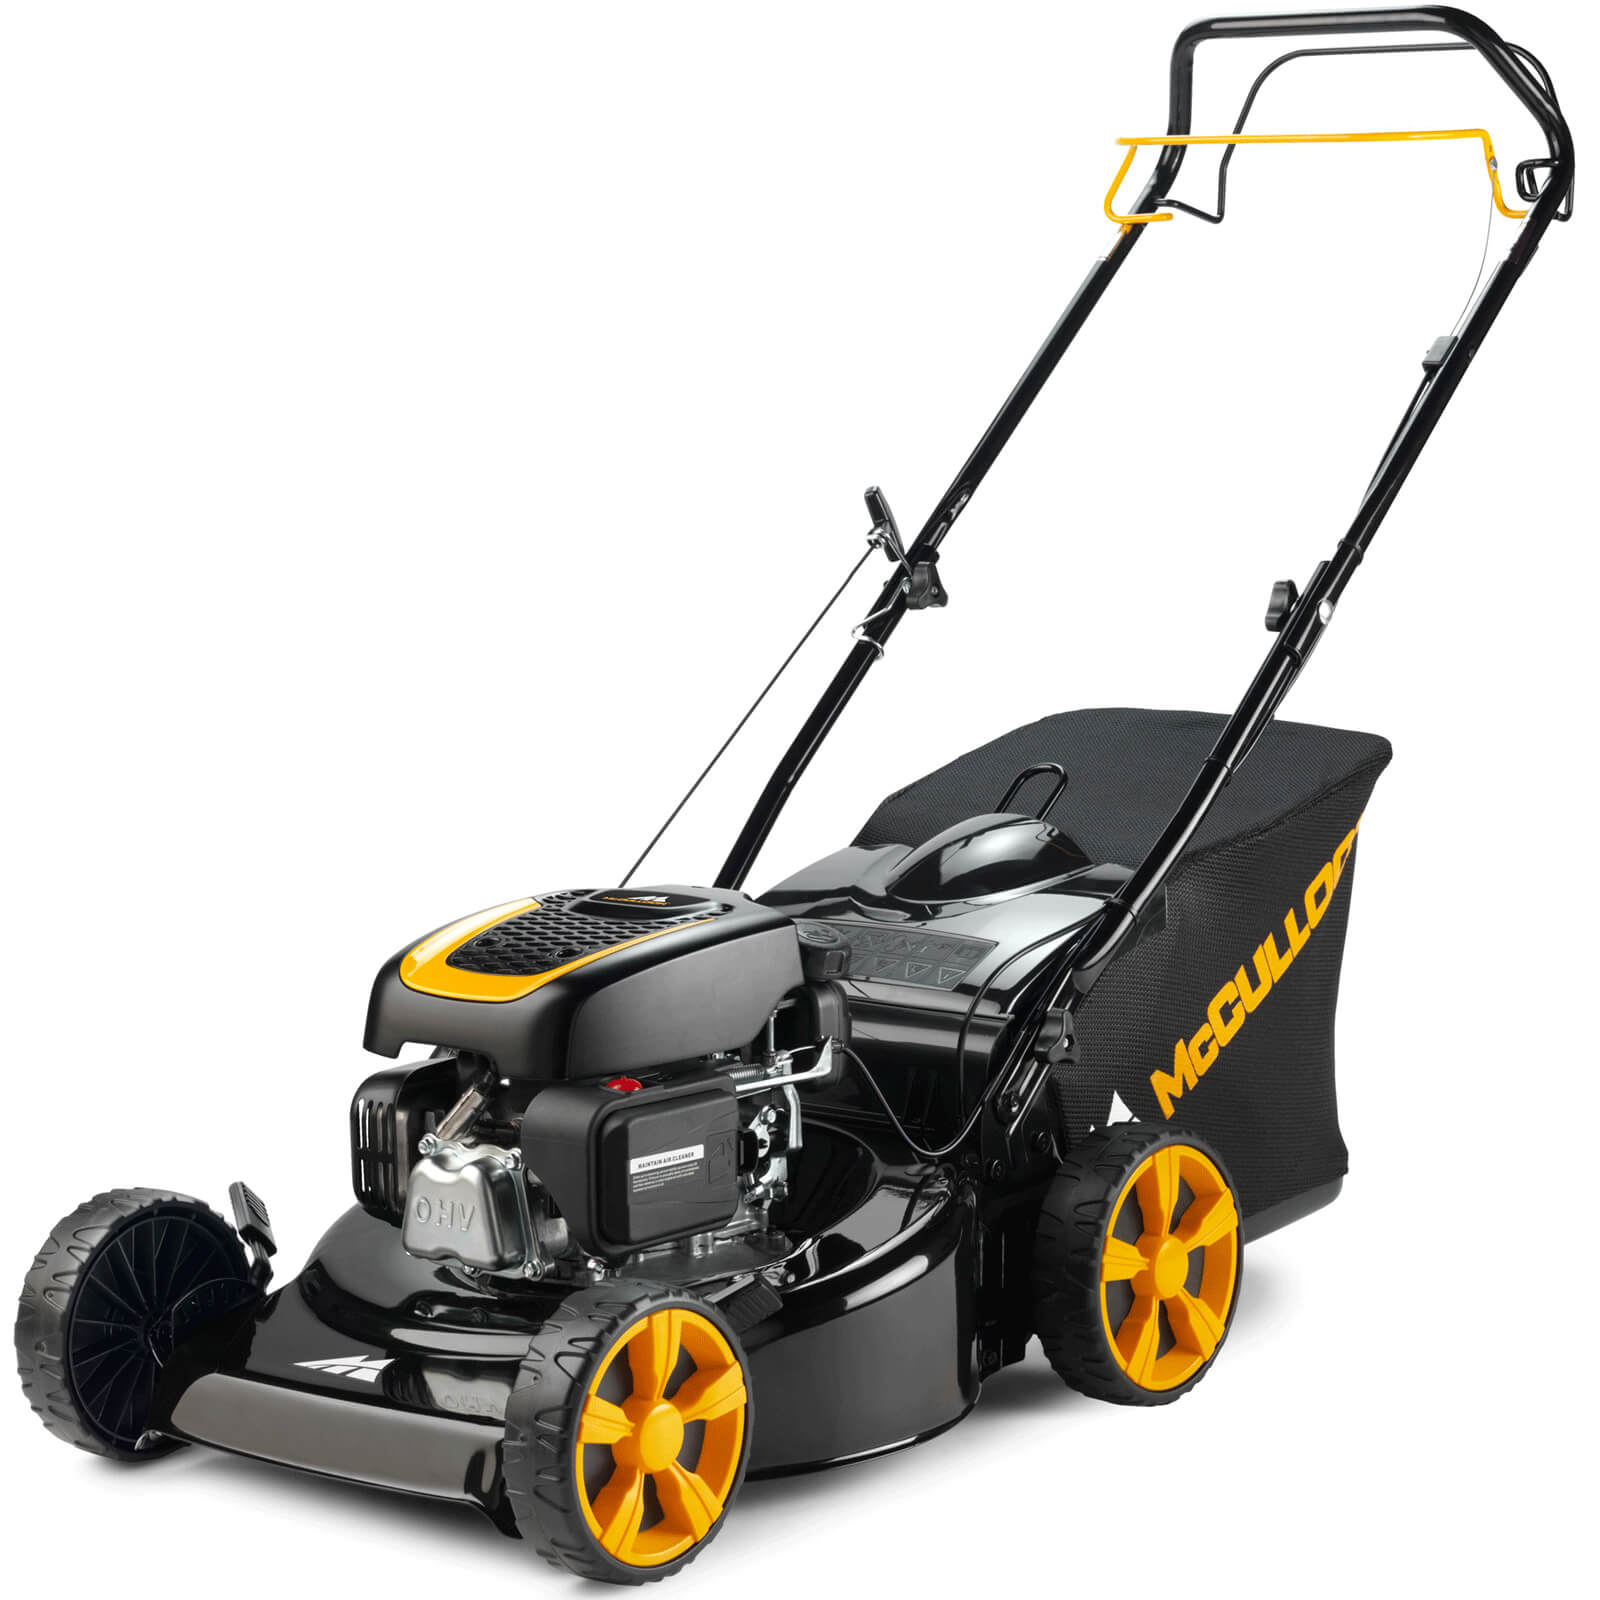 Image of McCulloch M46-120R Self Propelled Petrol Rotary Lawnmower 460mm